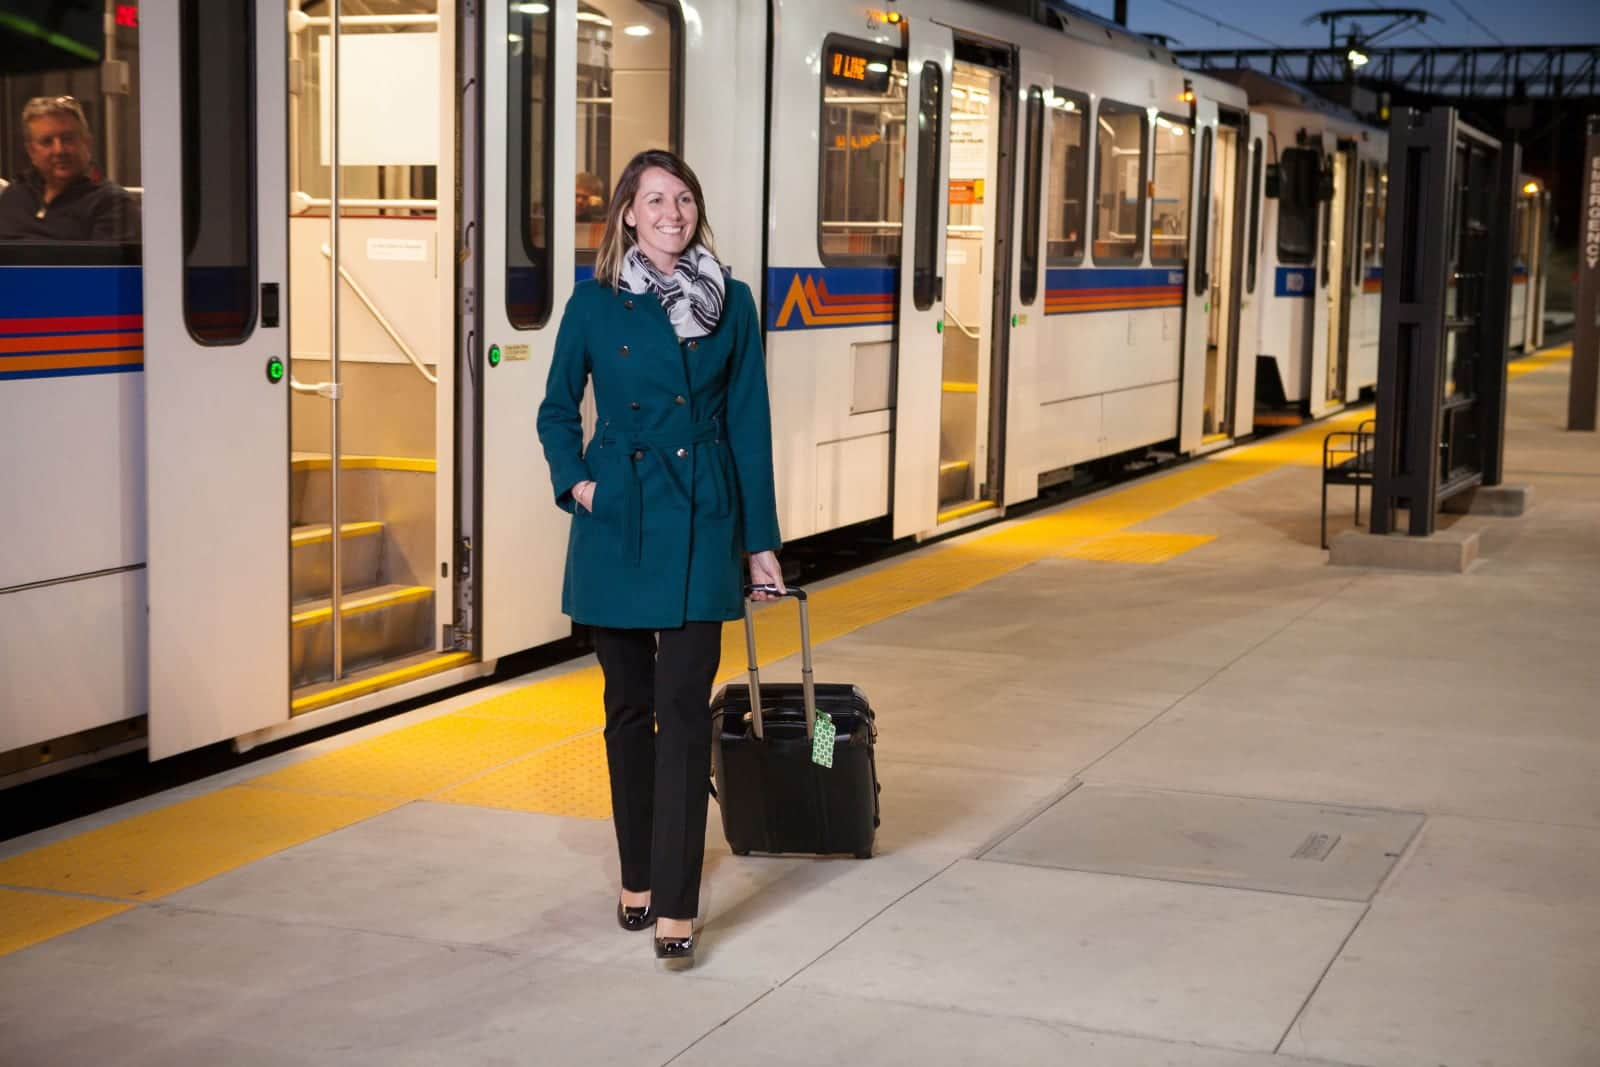 RTD Train Business Woman Exiting Light Rail